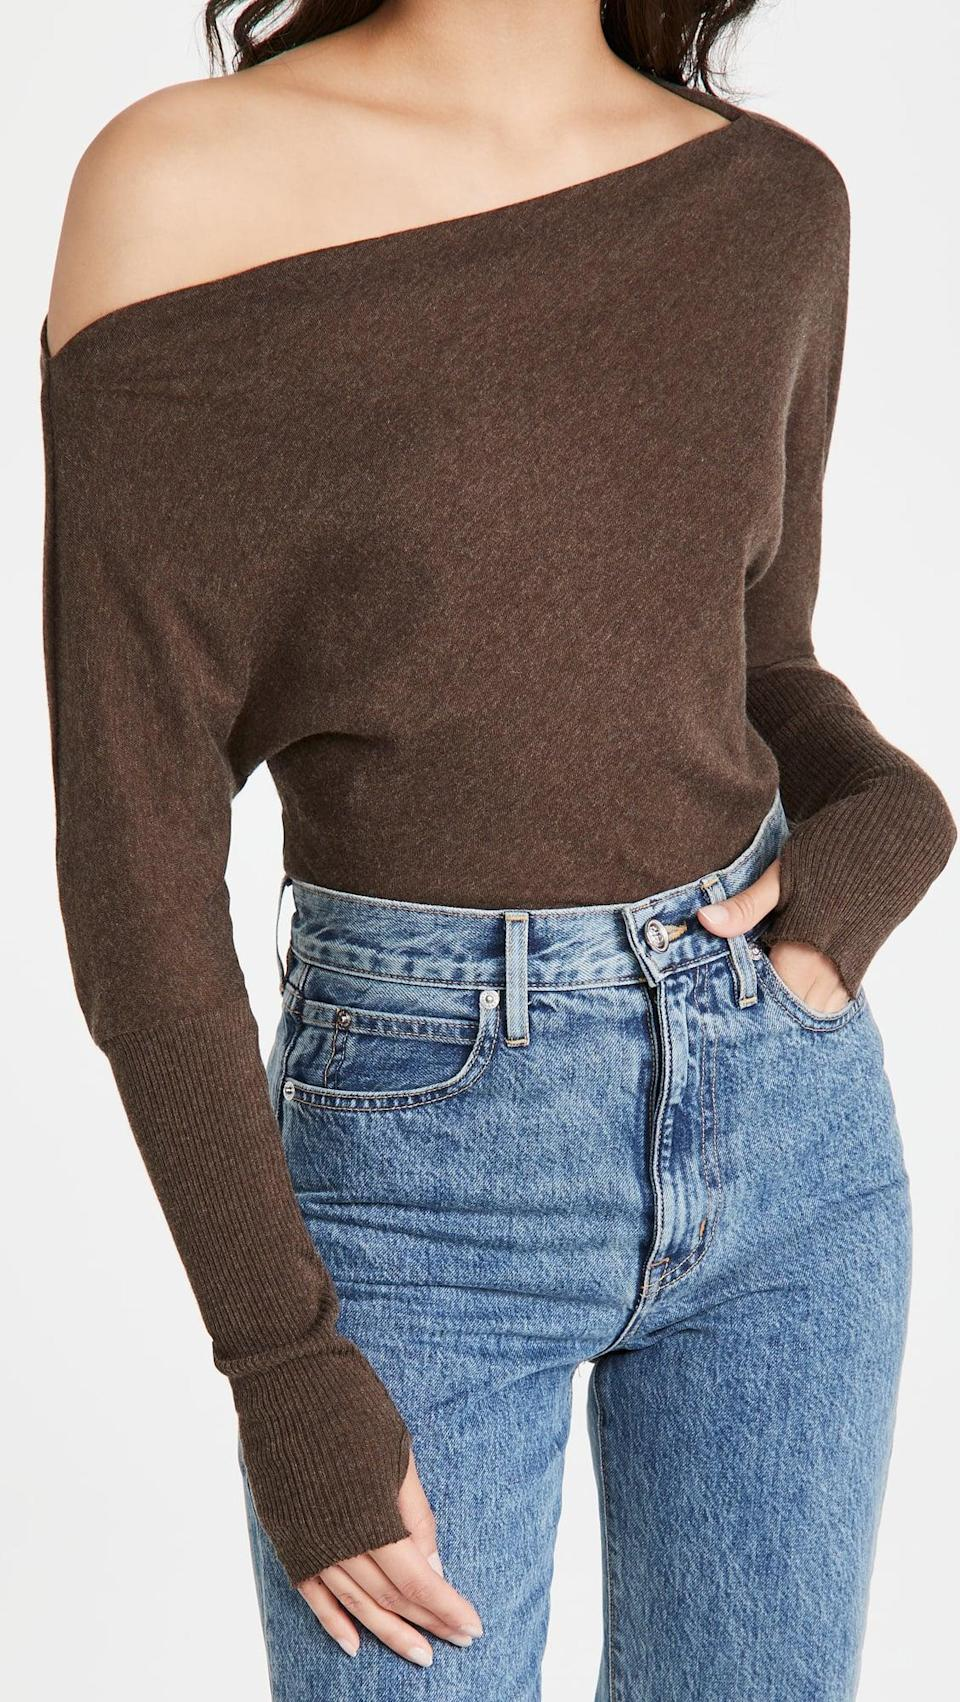 <p>Show off your shoulders in this <span>Enza Costa Cashmere Cuffed Off Shoulder Sweater</span> ($198).</p>